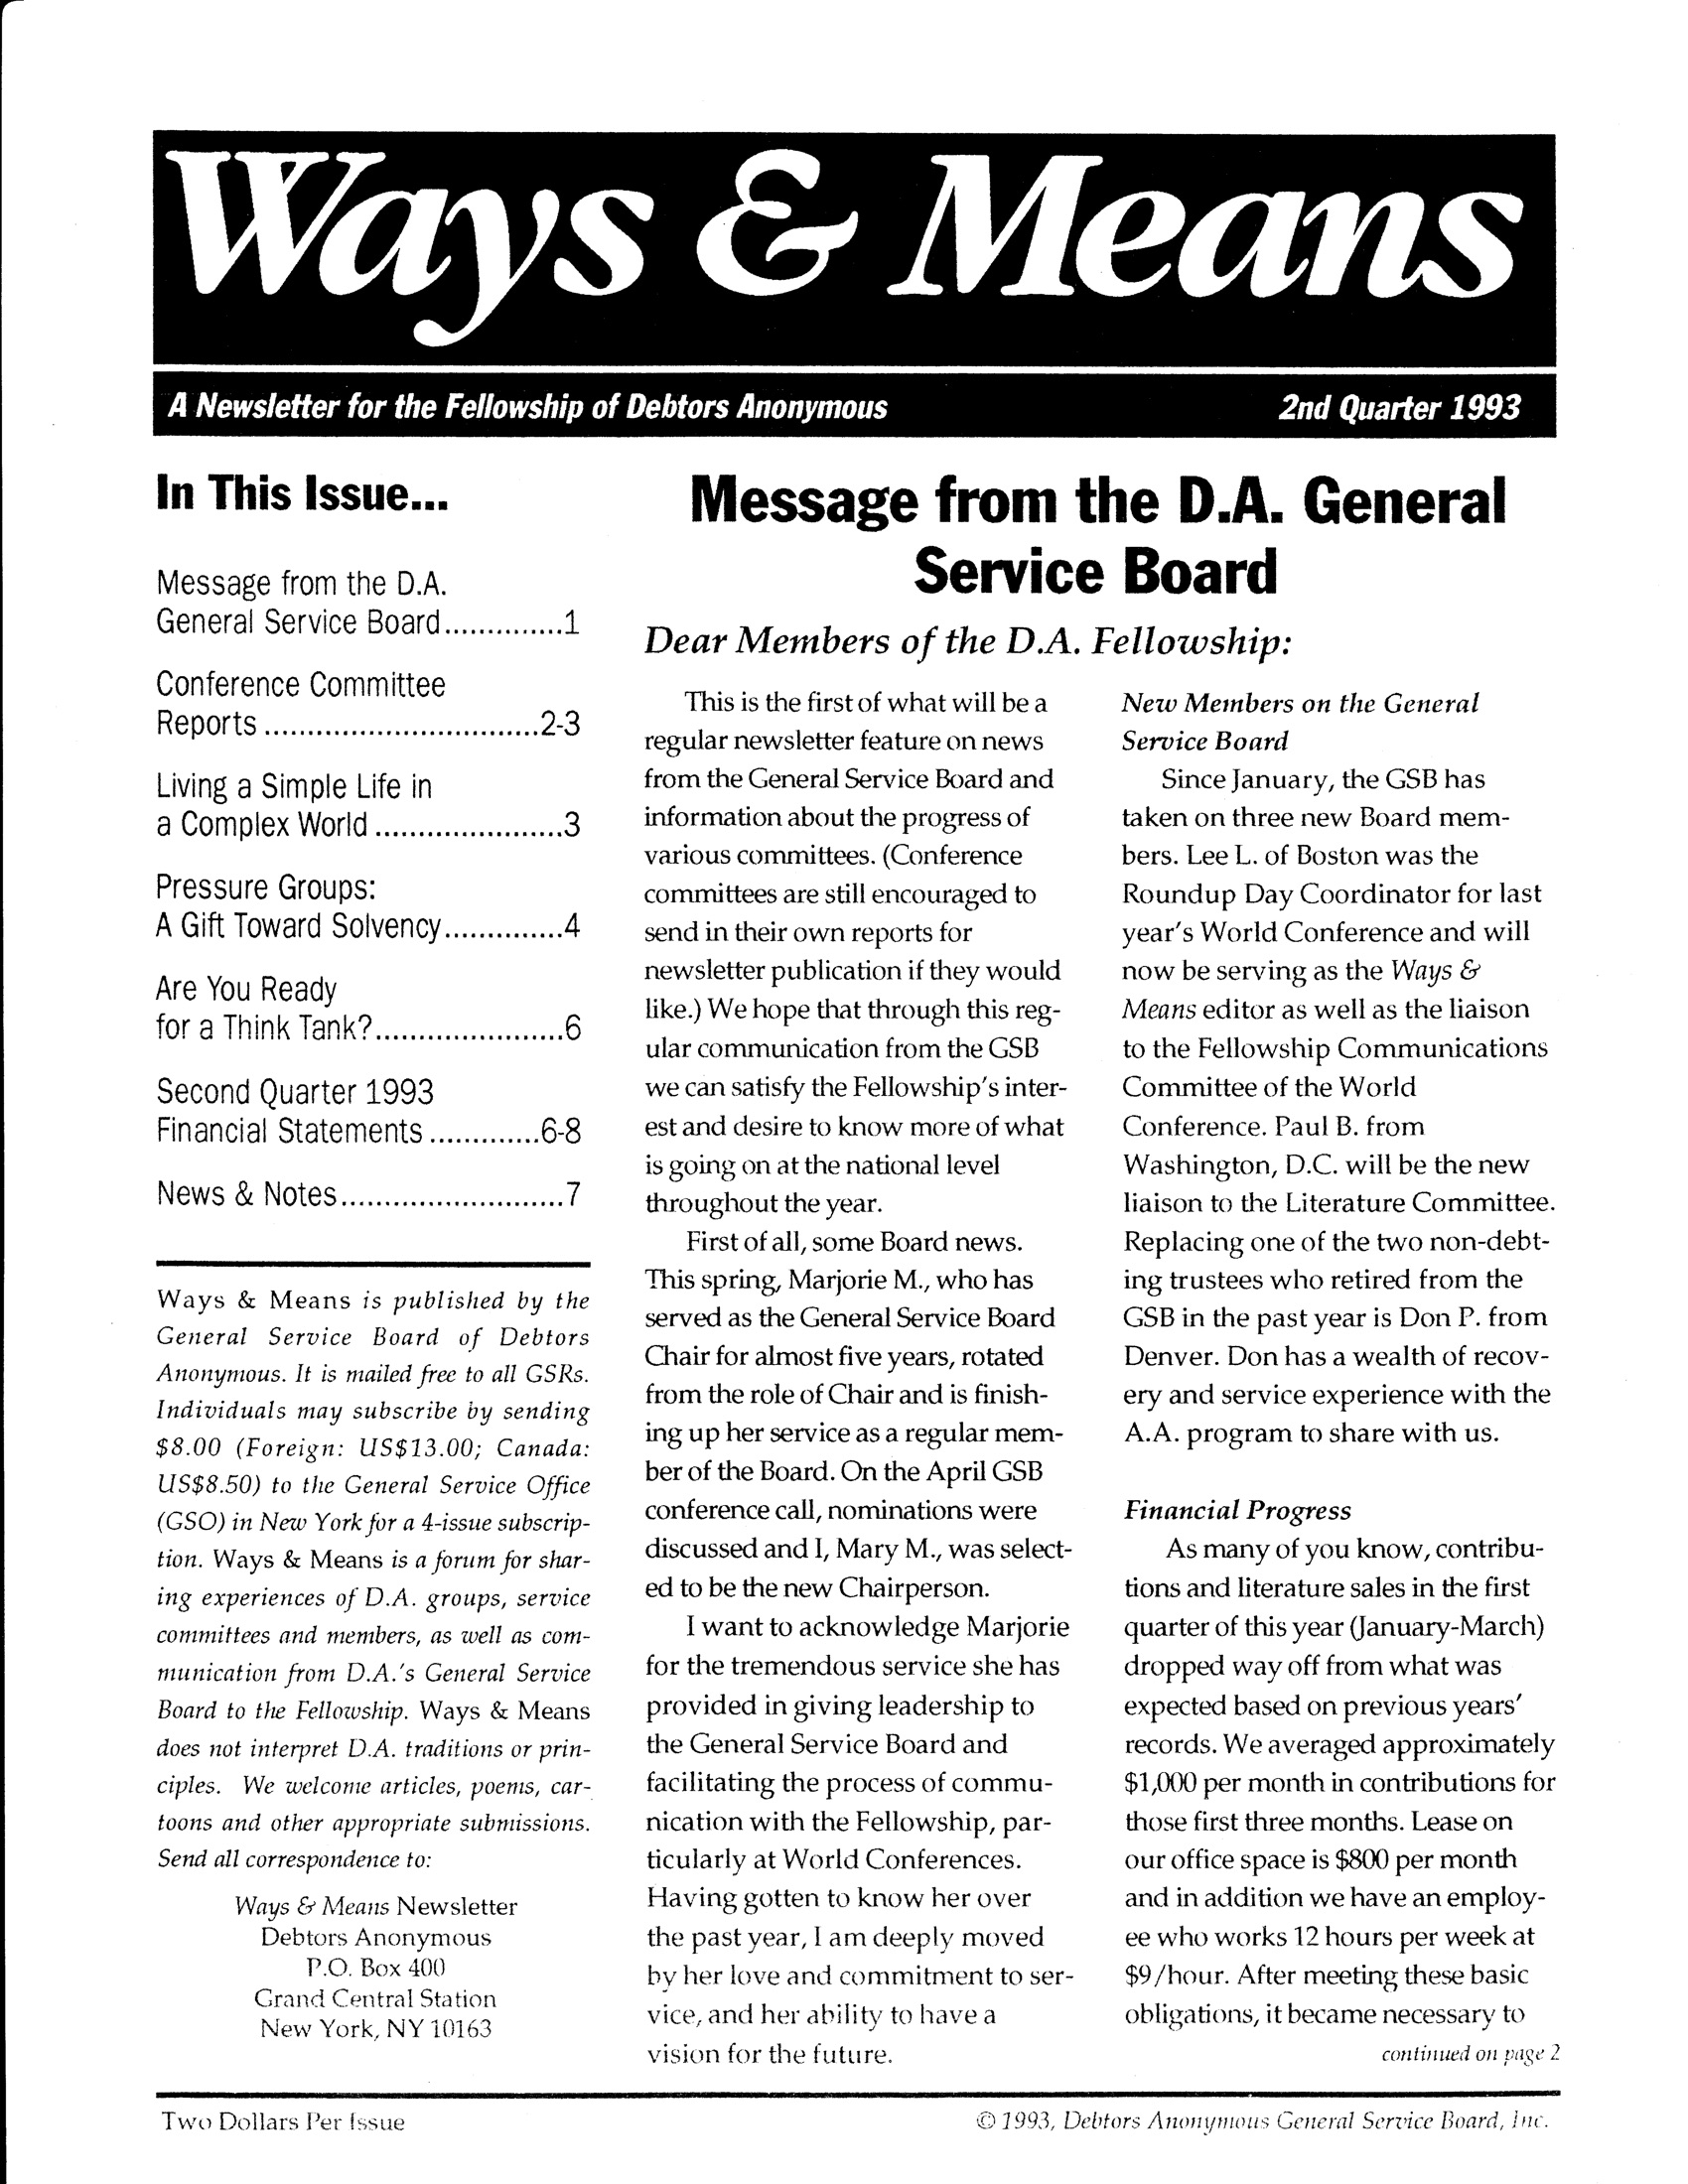 Ways & Means 2nd QTR 1993